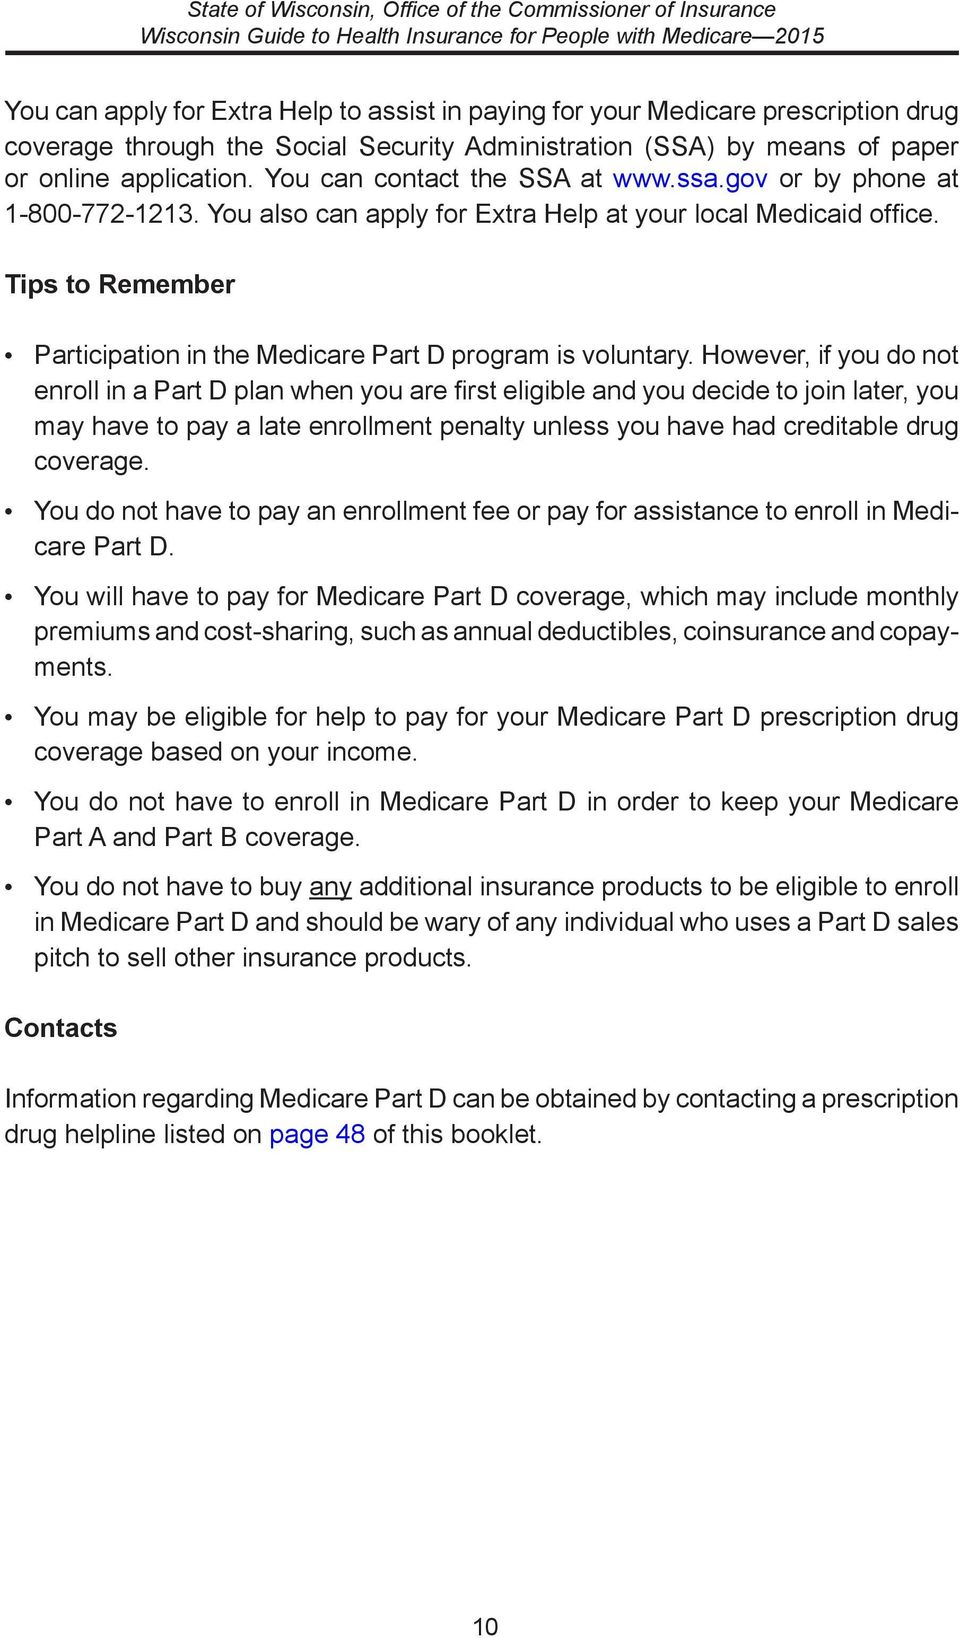 Tips to Remember Participation in the Medicare Part D program is voluntary.